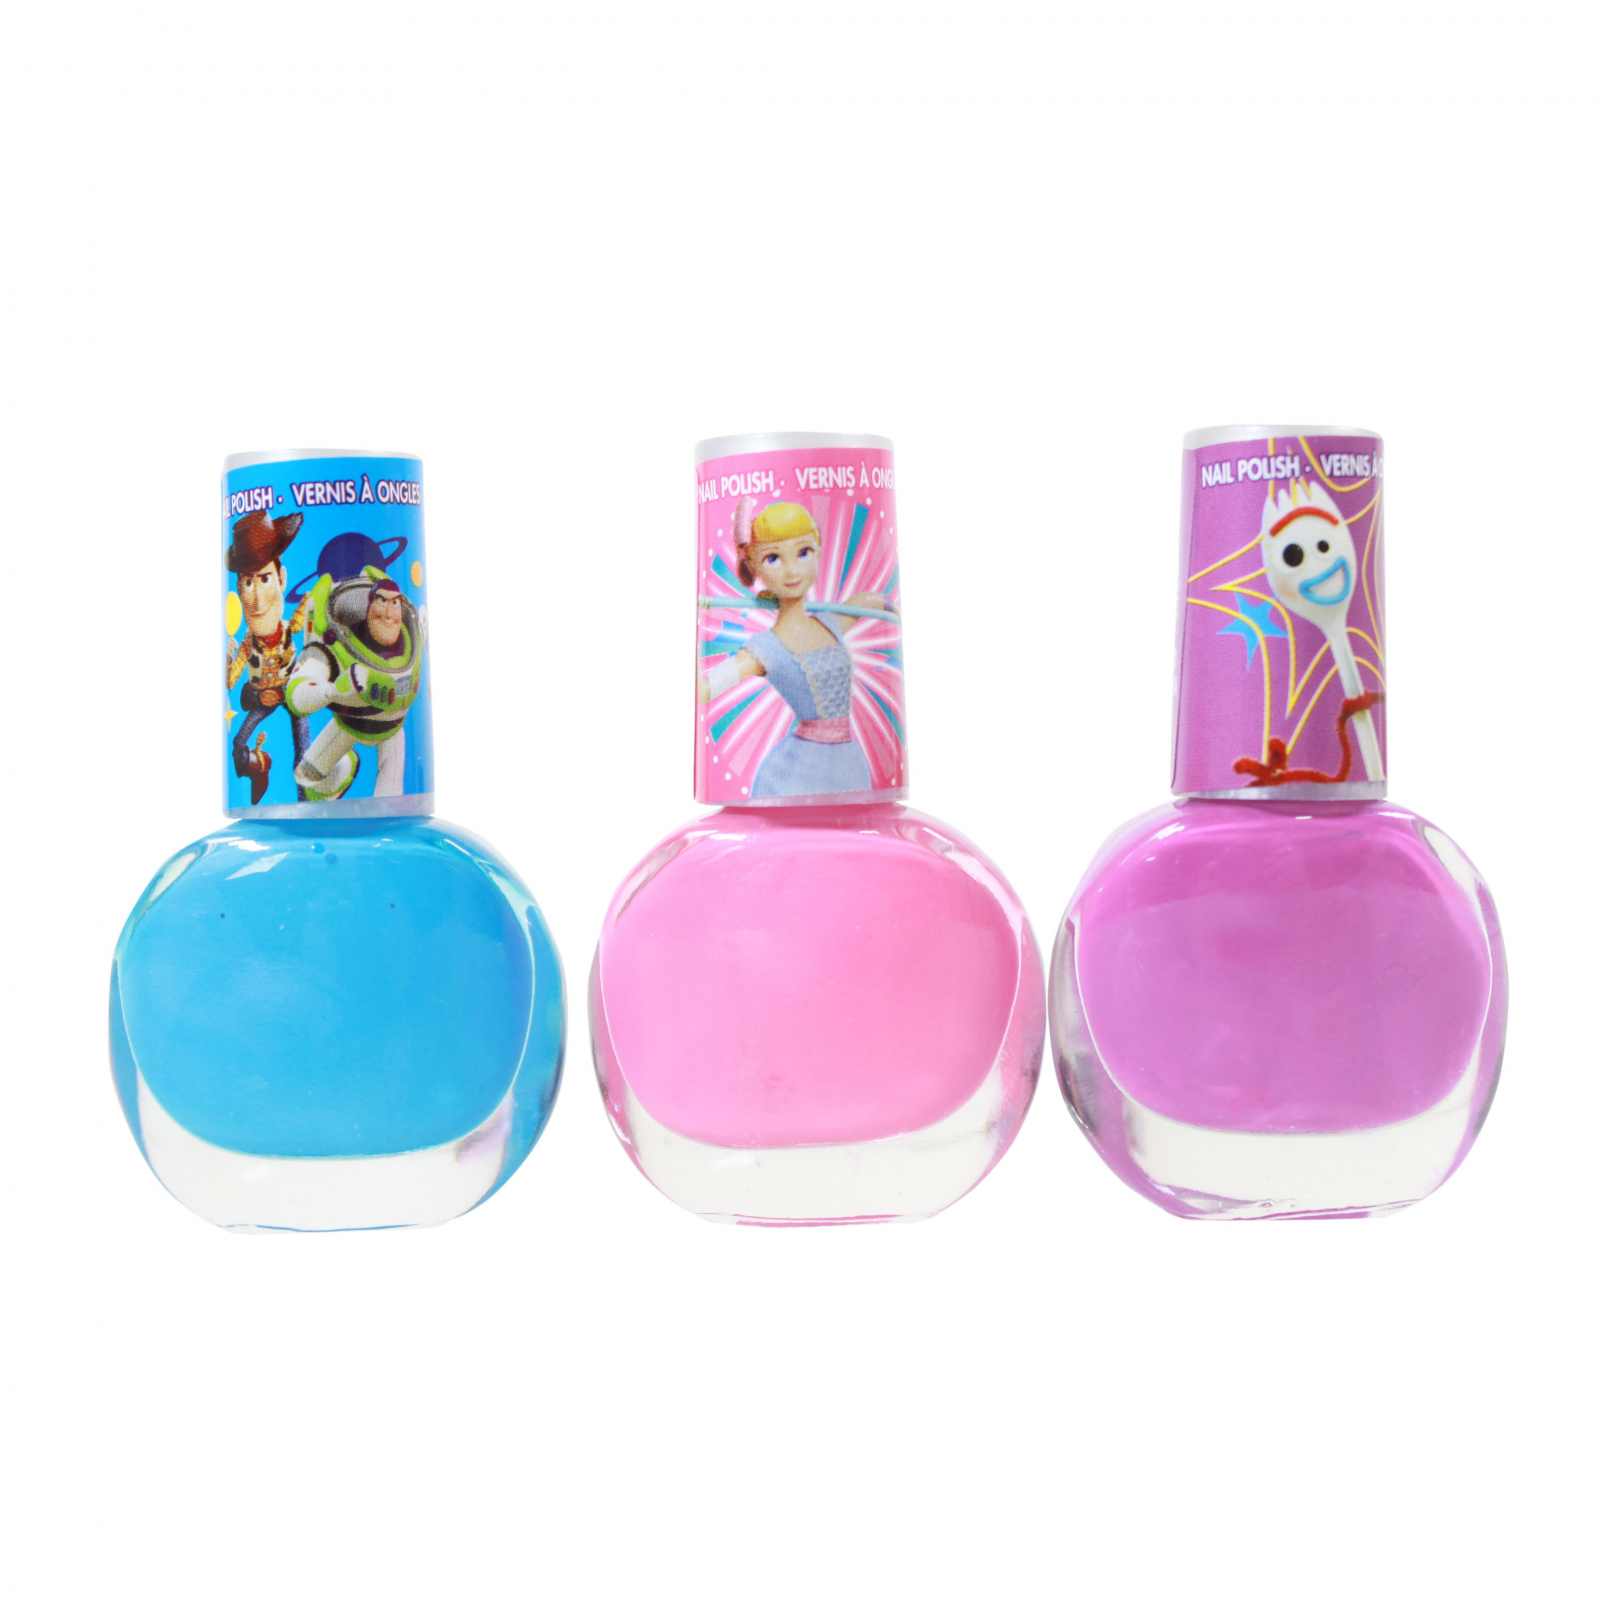 Toy Story 4 Nail Polish and Stickers Set